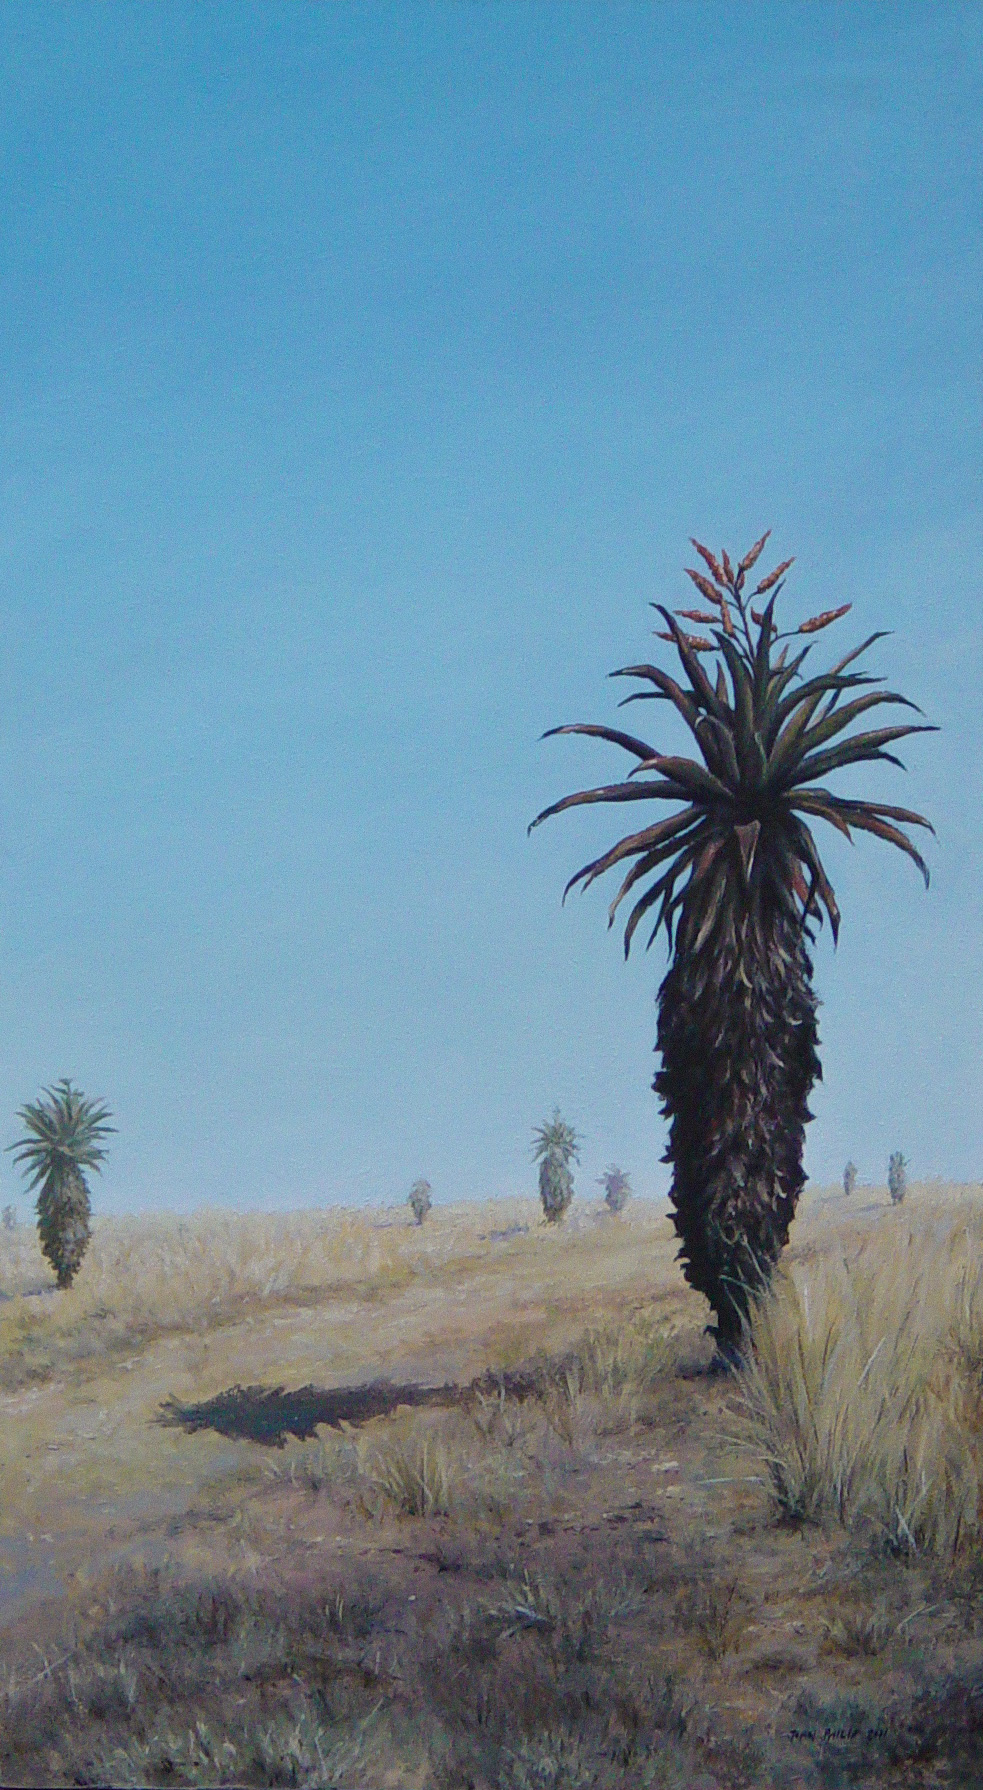 South African landscape of some aloes alongside a dusty road and a clear blue sky.